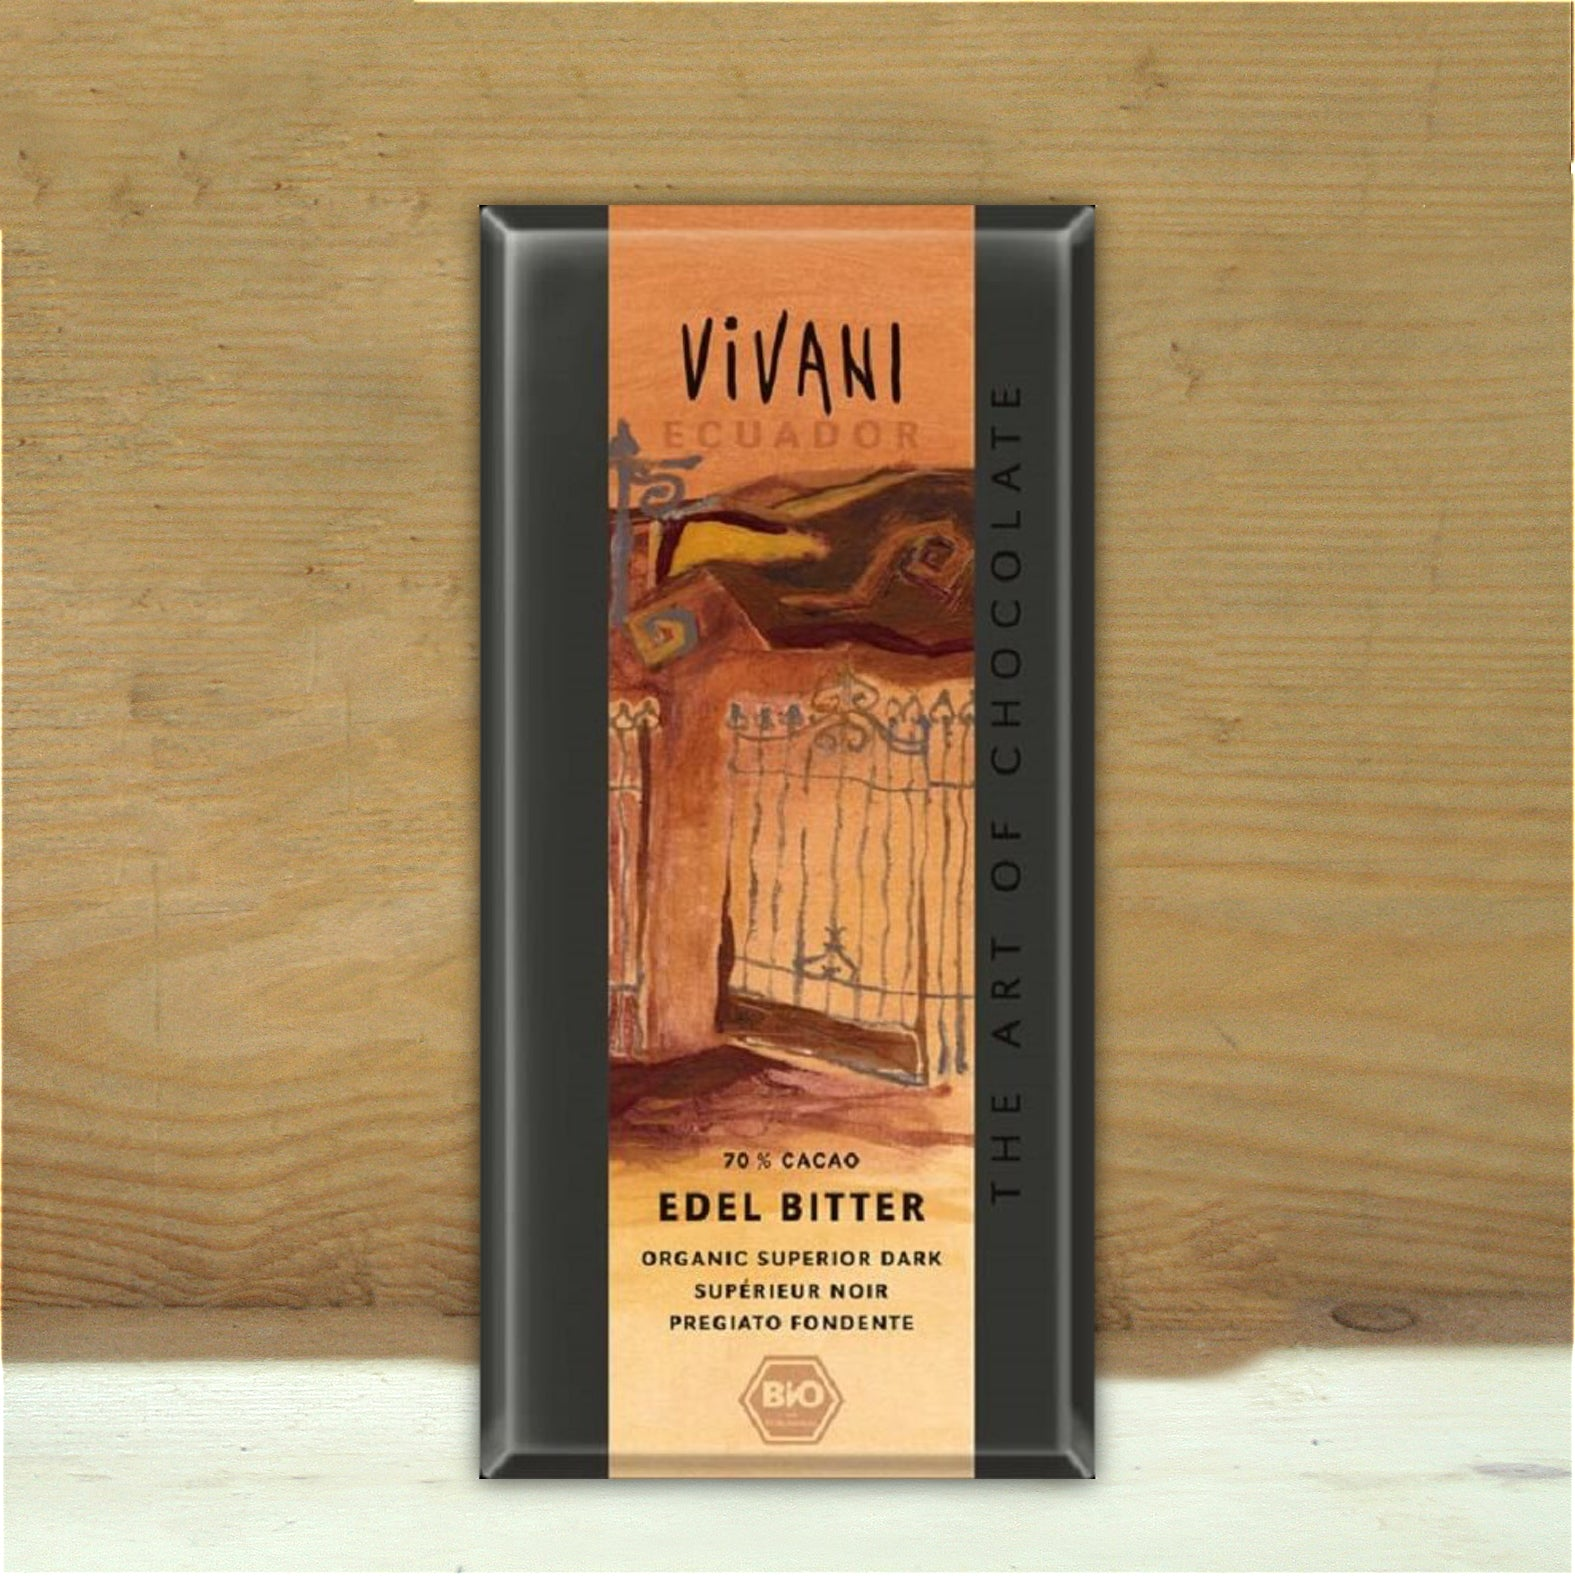 Vivani Superior Ecuador 75% Dark Chocolate Bar 100g